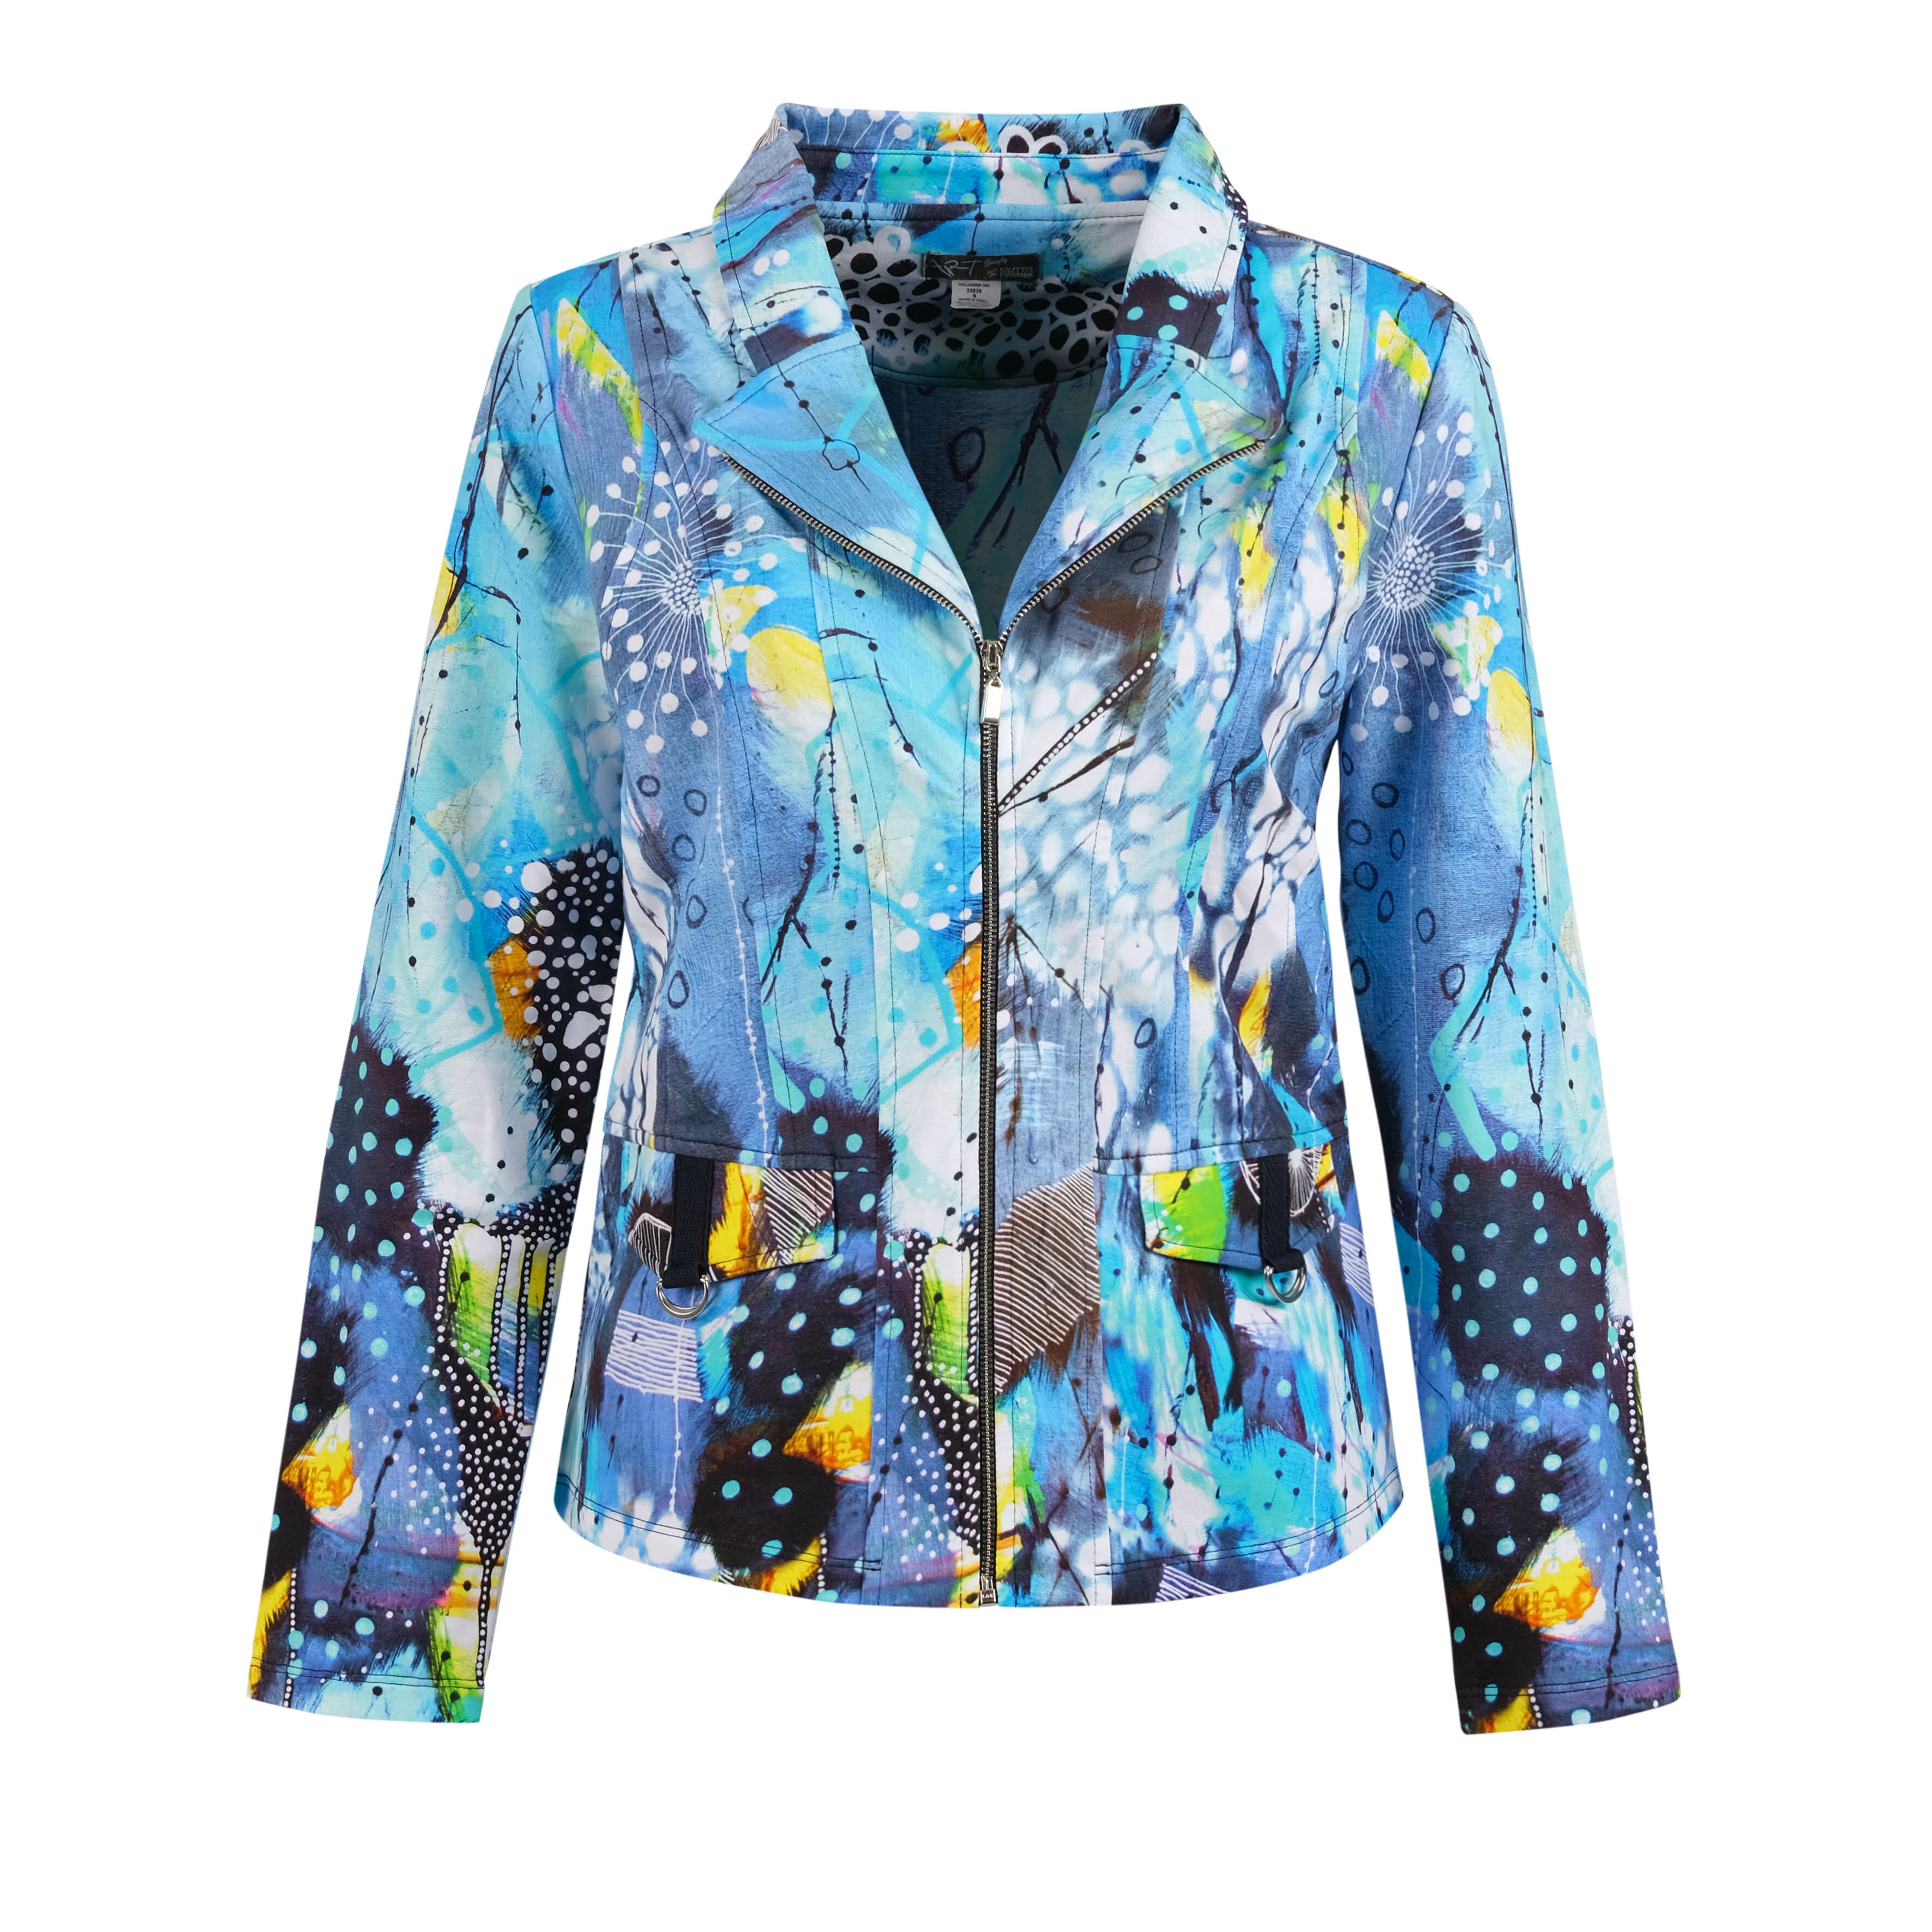 Simply Art Dolcezza: The Love of Blue Happiness Abstract Art Zip Jacket SOLD OUT